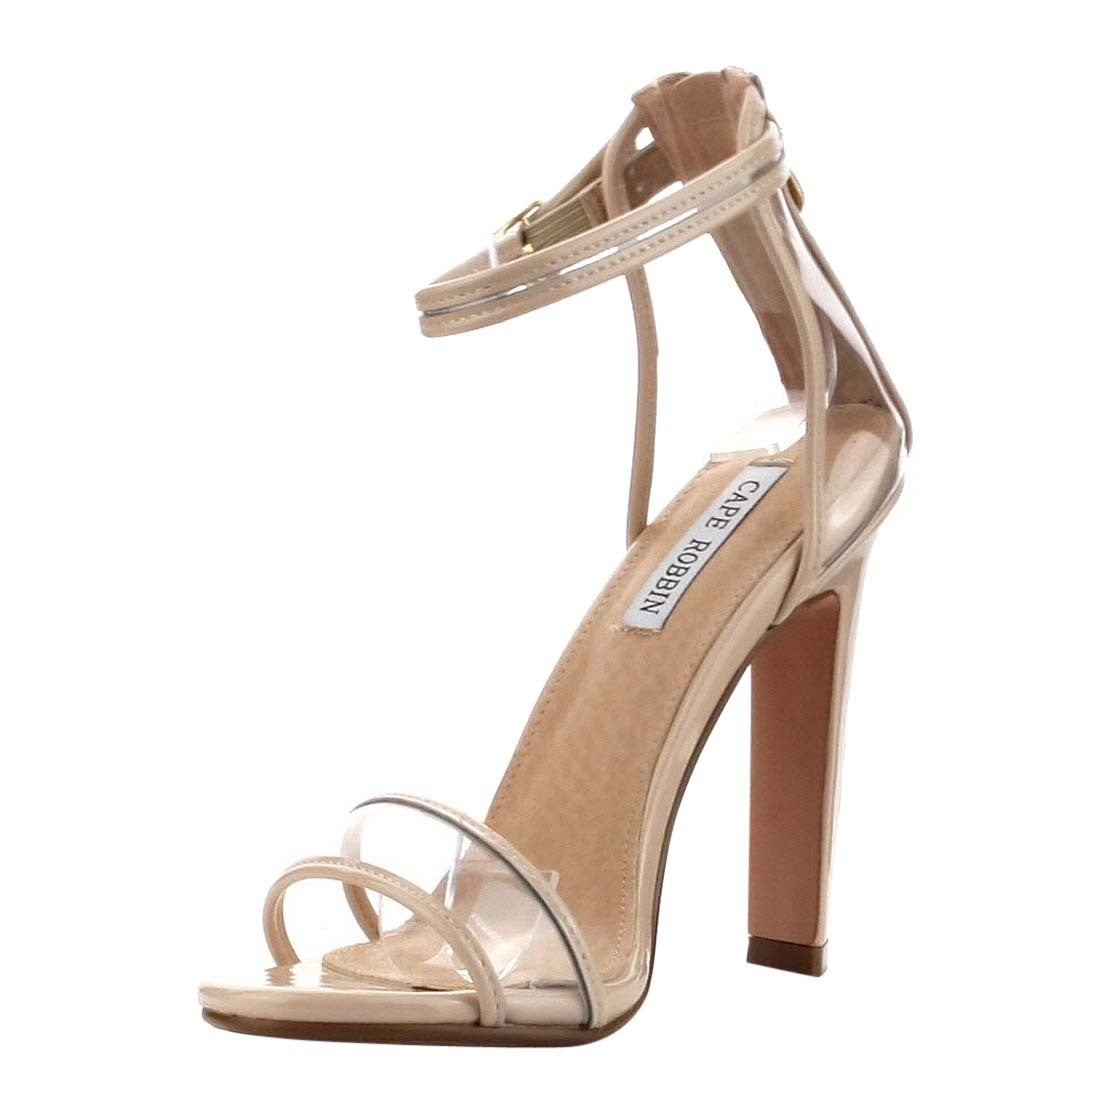 a48c7a77fe9 Shop Cape Robbin Women s FG28 Ankle-strap Single-band Block-heel Dress  Sandals - Free Shipping On Orders Over  45 - Overstock - 14054554